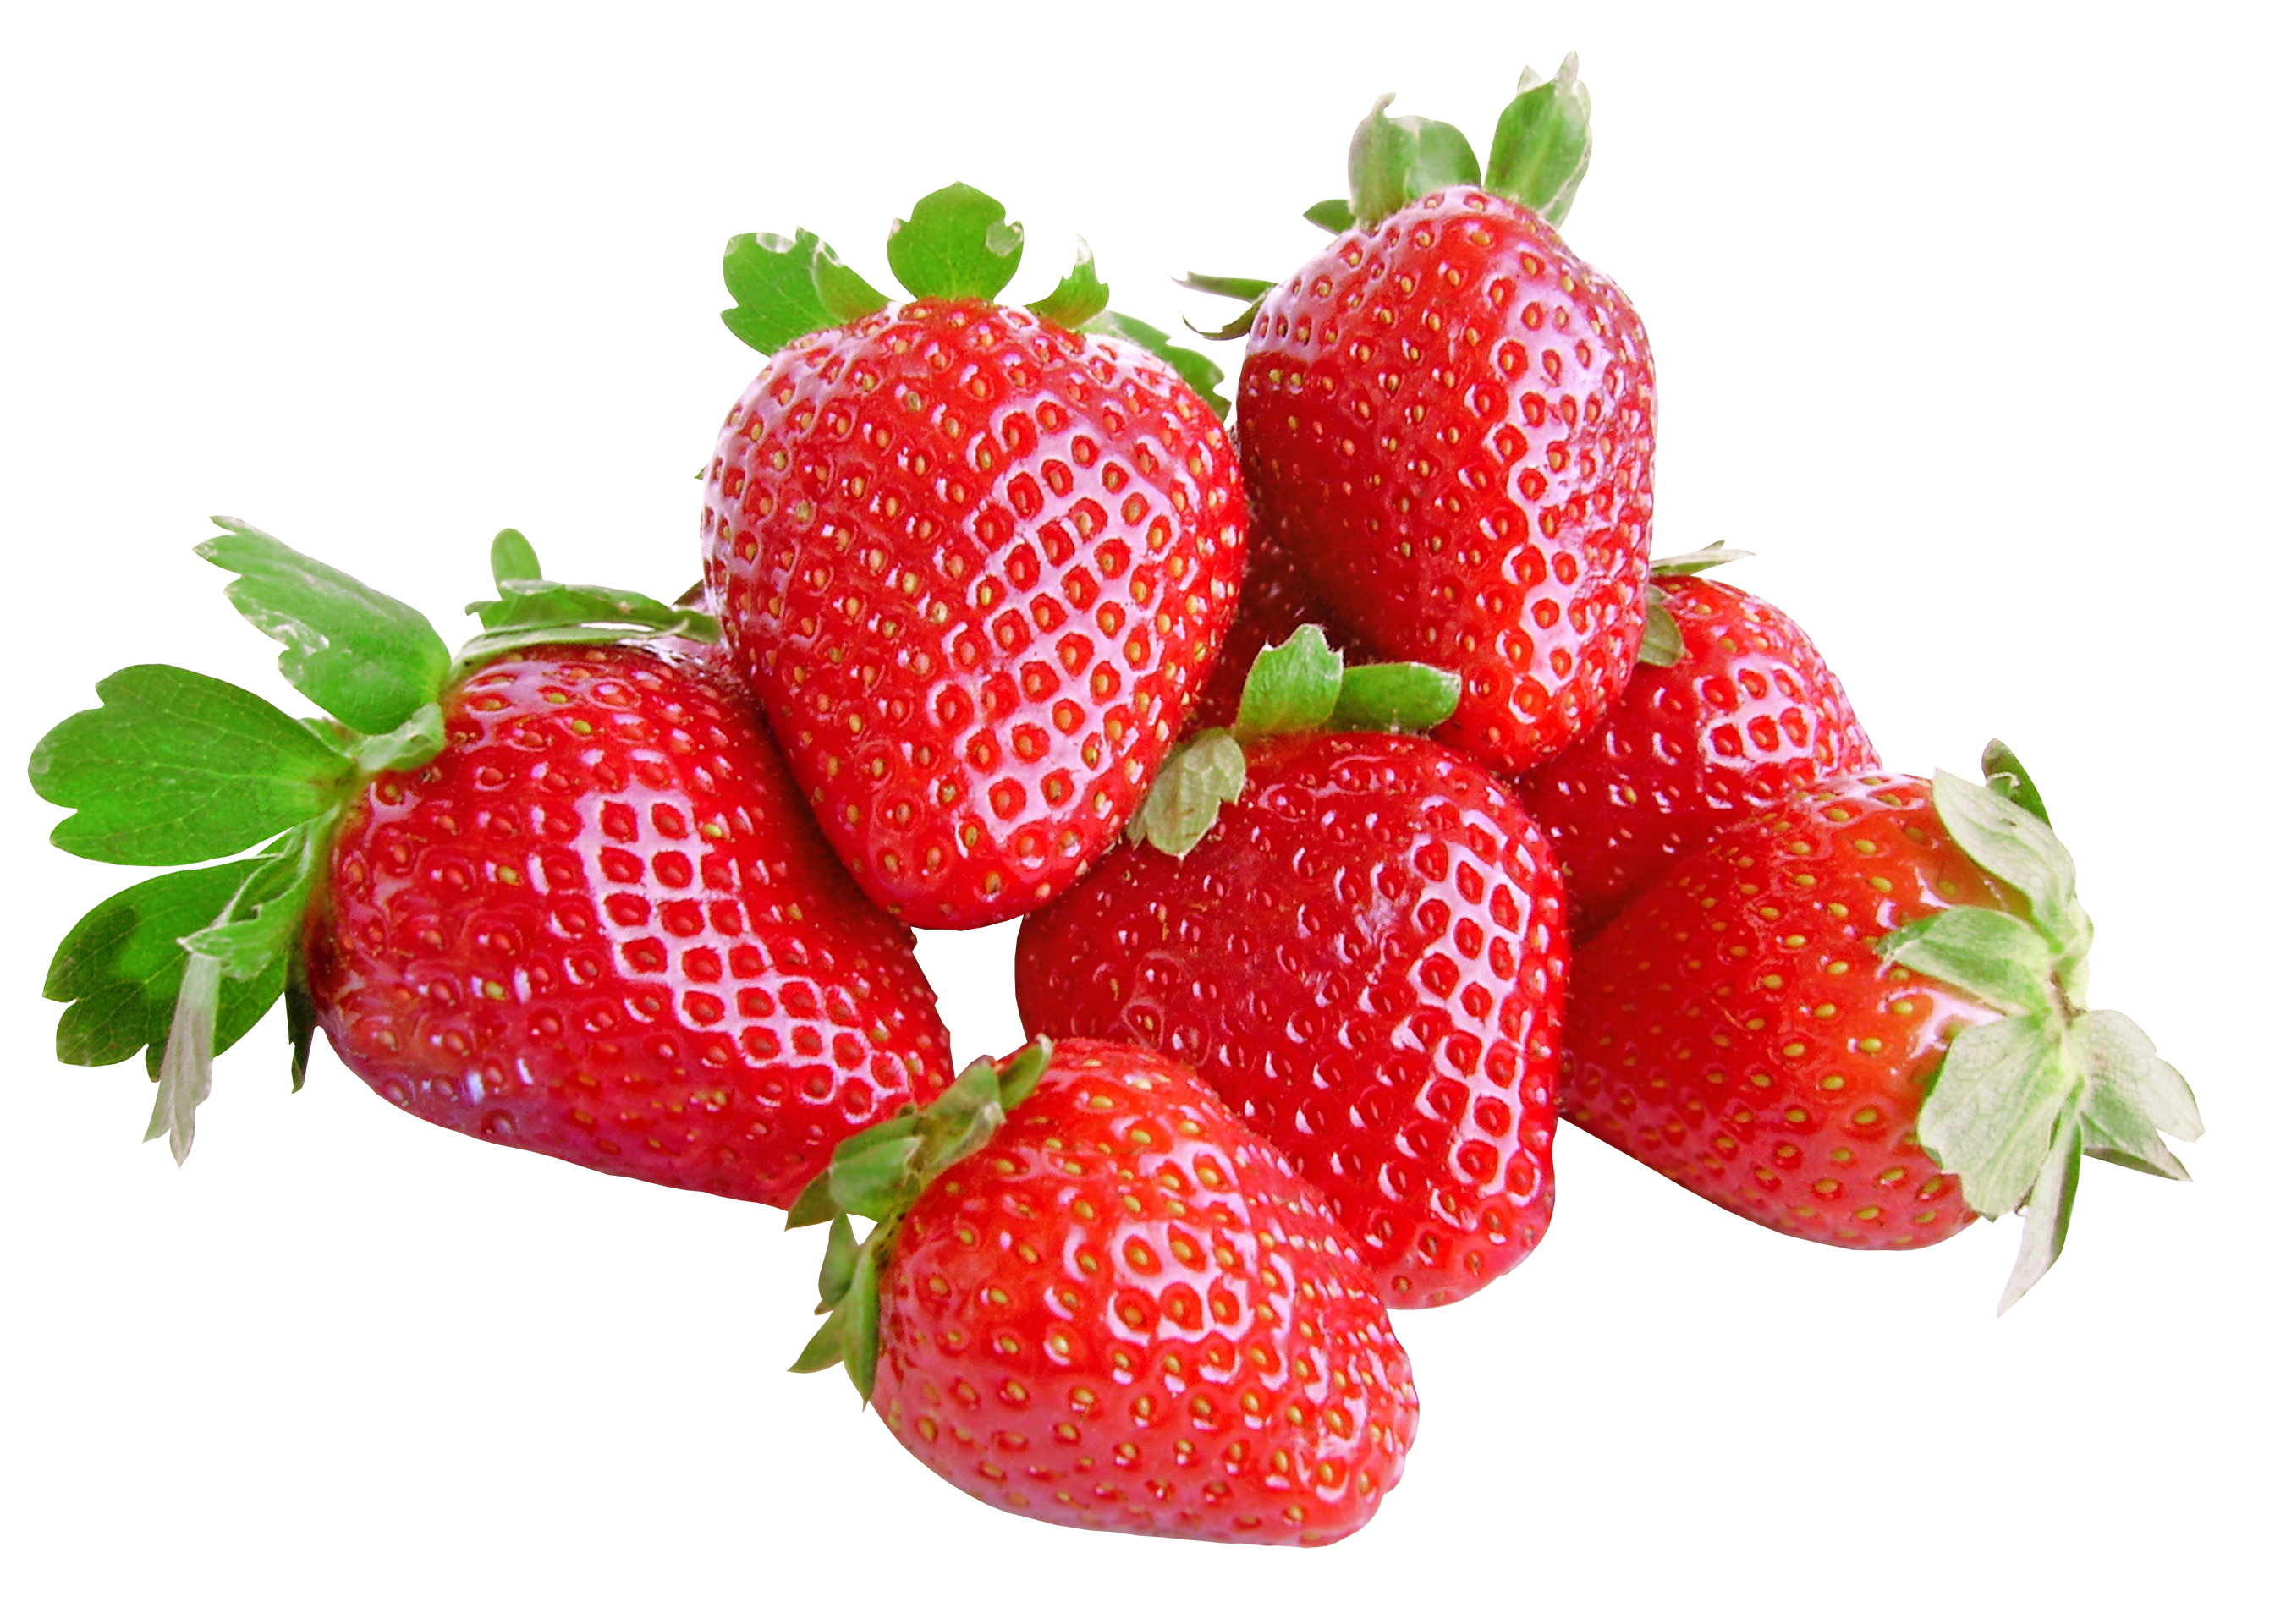 Strawberries png. Strawberry image picture download